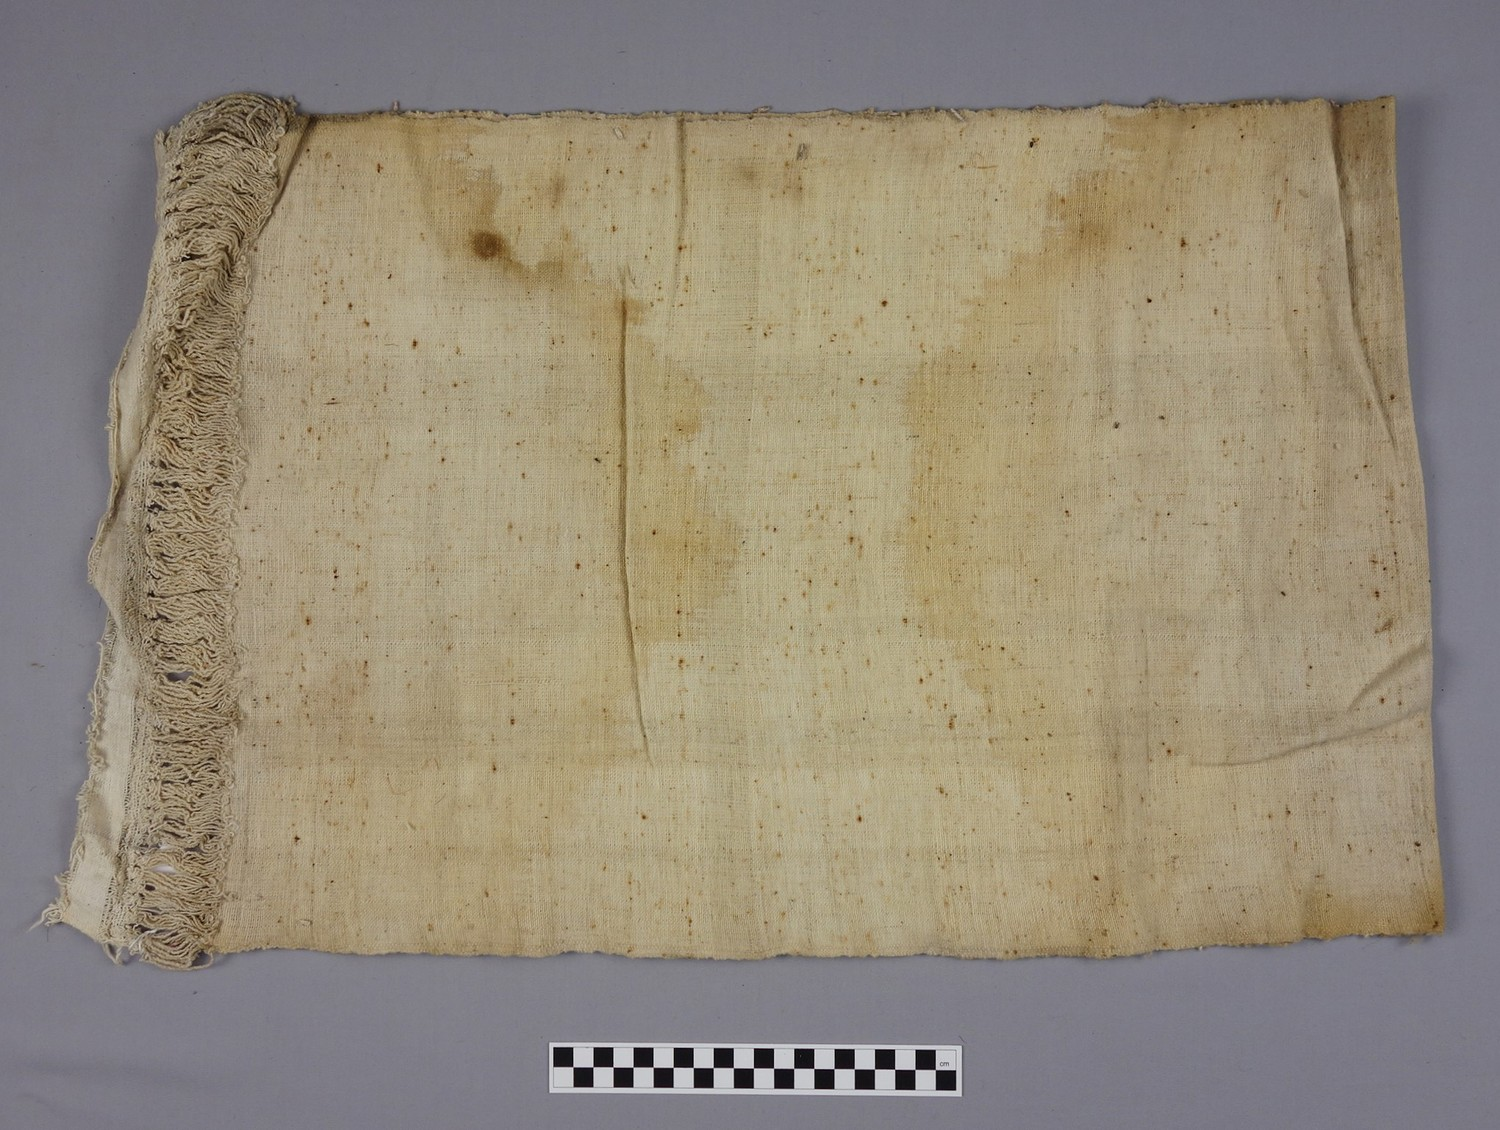 Piece of Dammur cloth from Sudan, 1920s, collected by Grace Crowfoot (TRC 2016.0034).